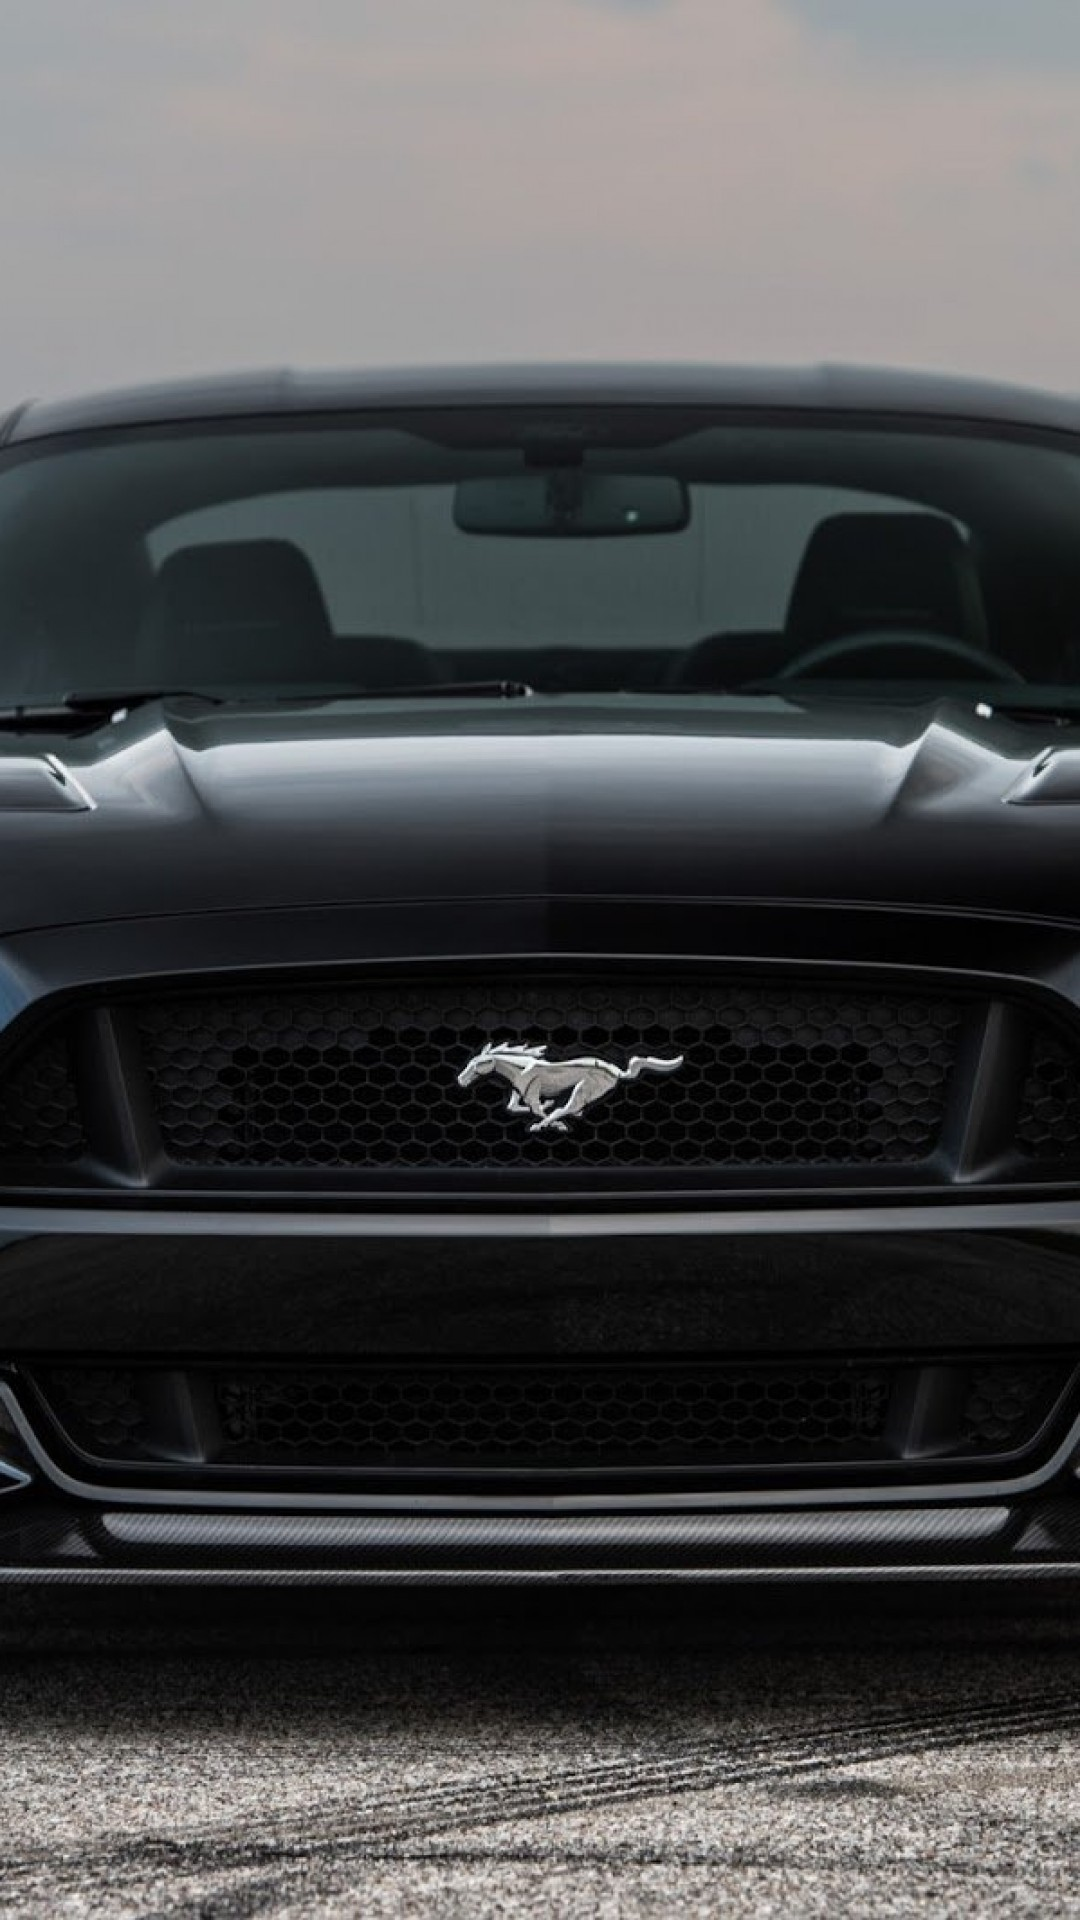 82 Mustang Iphone Wallpapers On Wallpaperplay Mustang Gt 2019 Black 346963 Hd Wallpaper Backgrounds Download